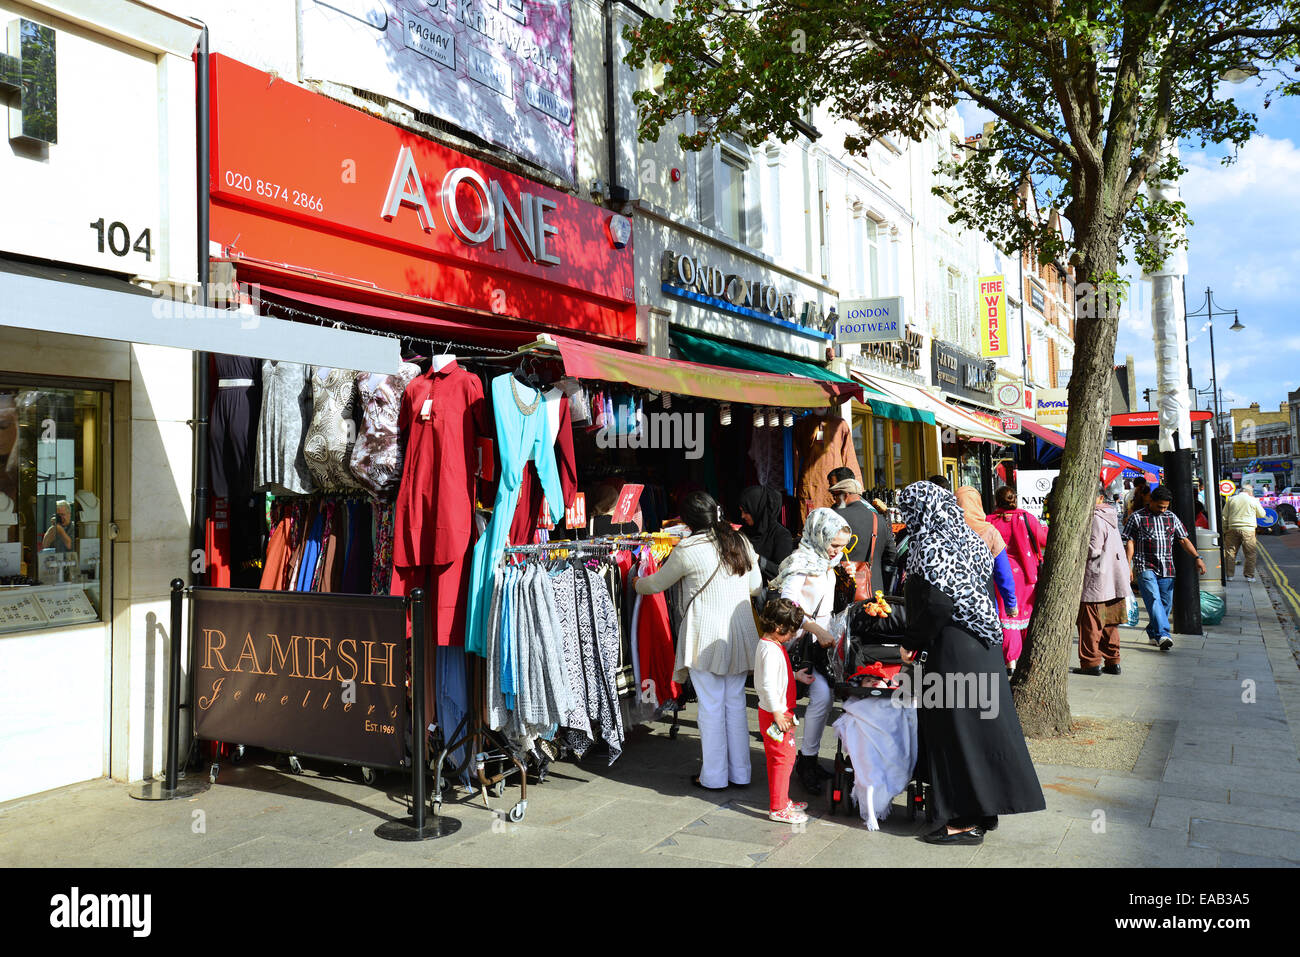 Indian clothing boutique, The Broadway, Southall, London Borough of Ealing, Greater London, England, United Kingdom - Stock Image